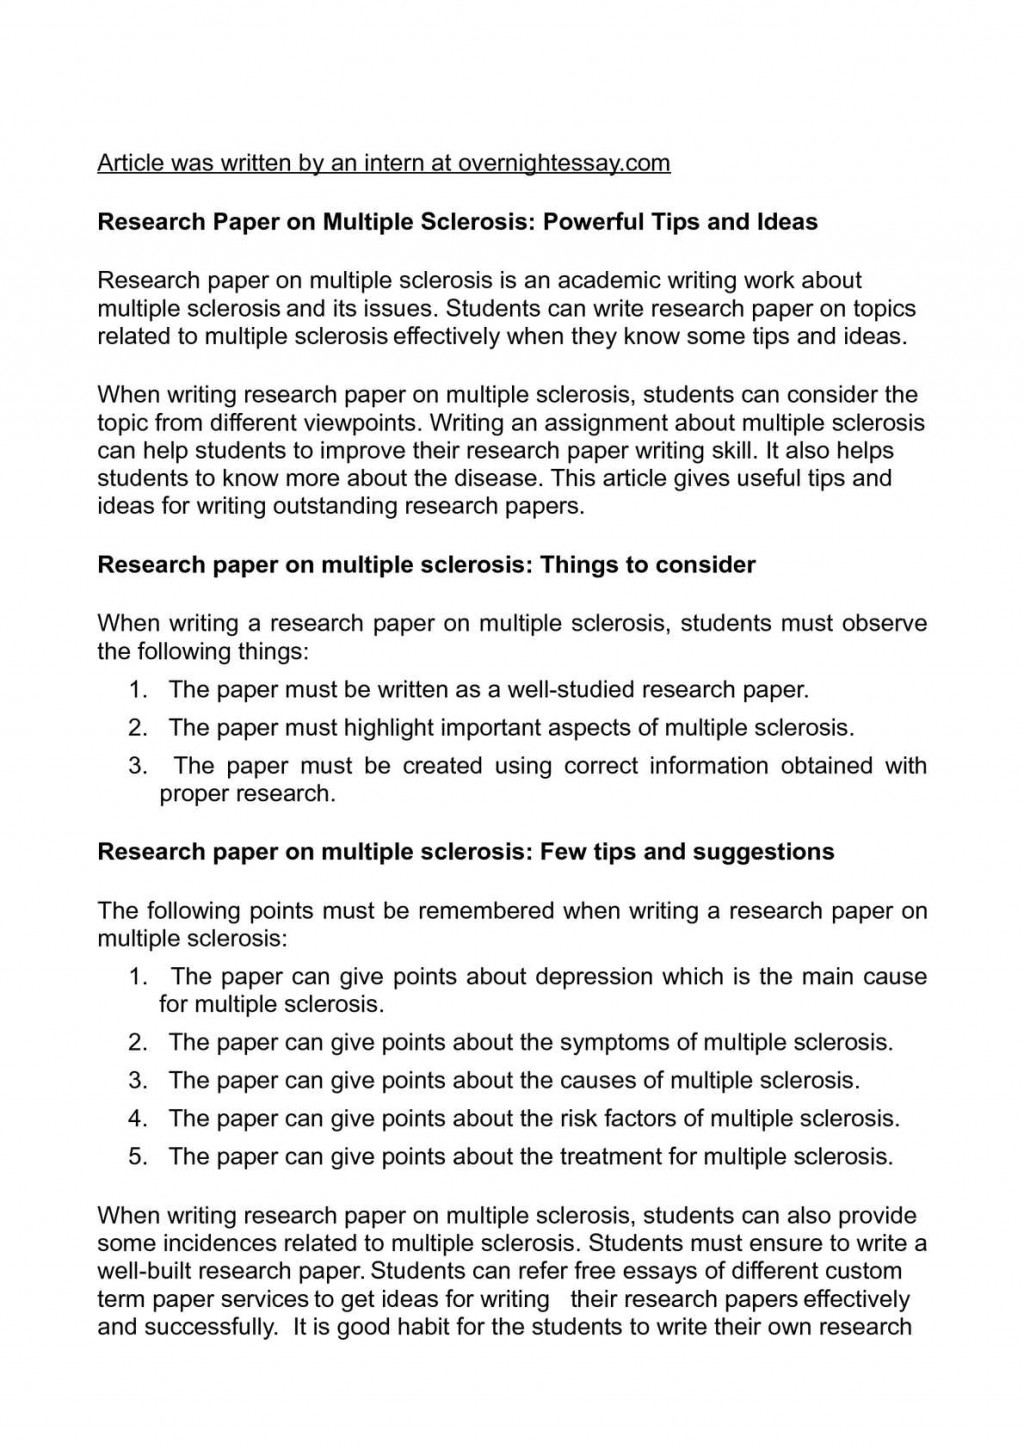 004 Research Paper Ideas To Write On Dreaded A Good Large